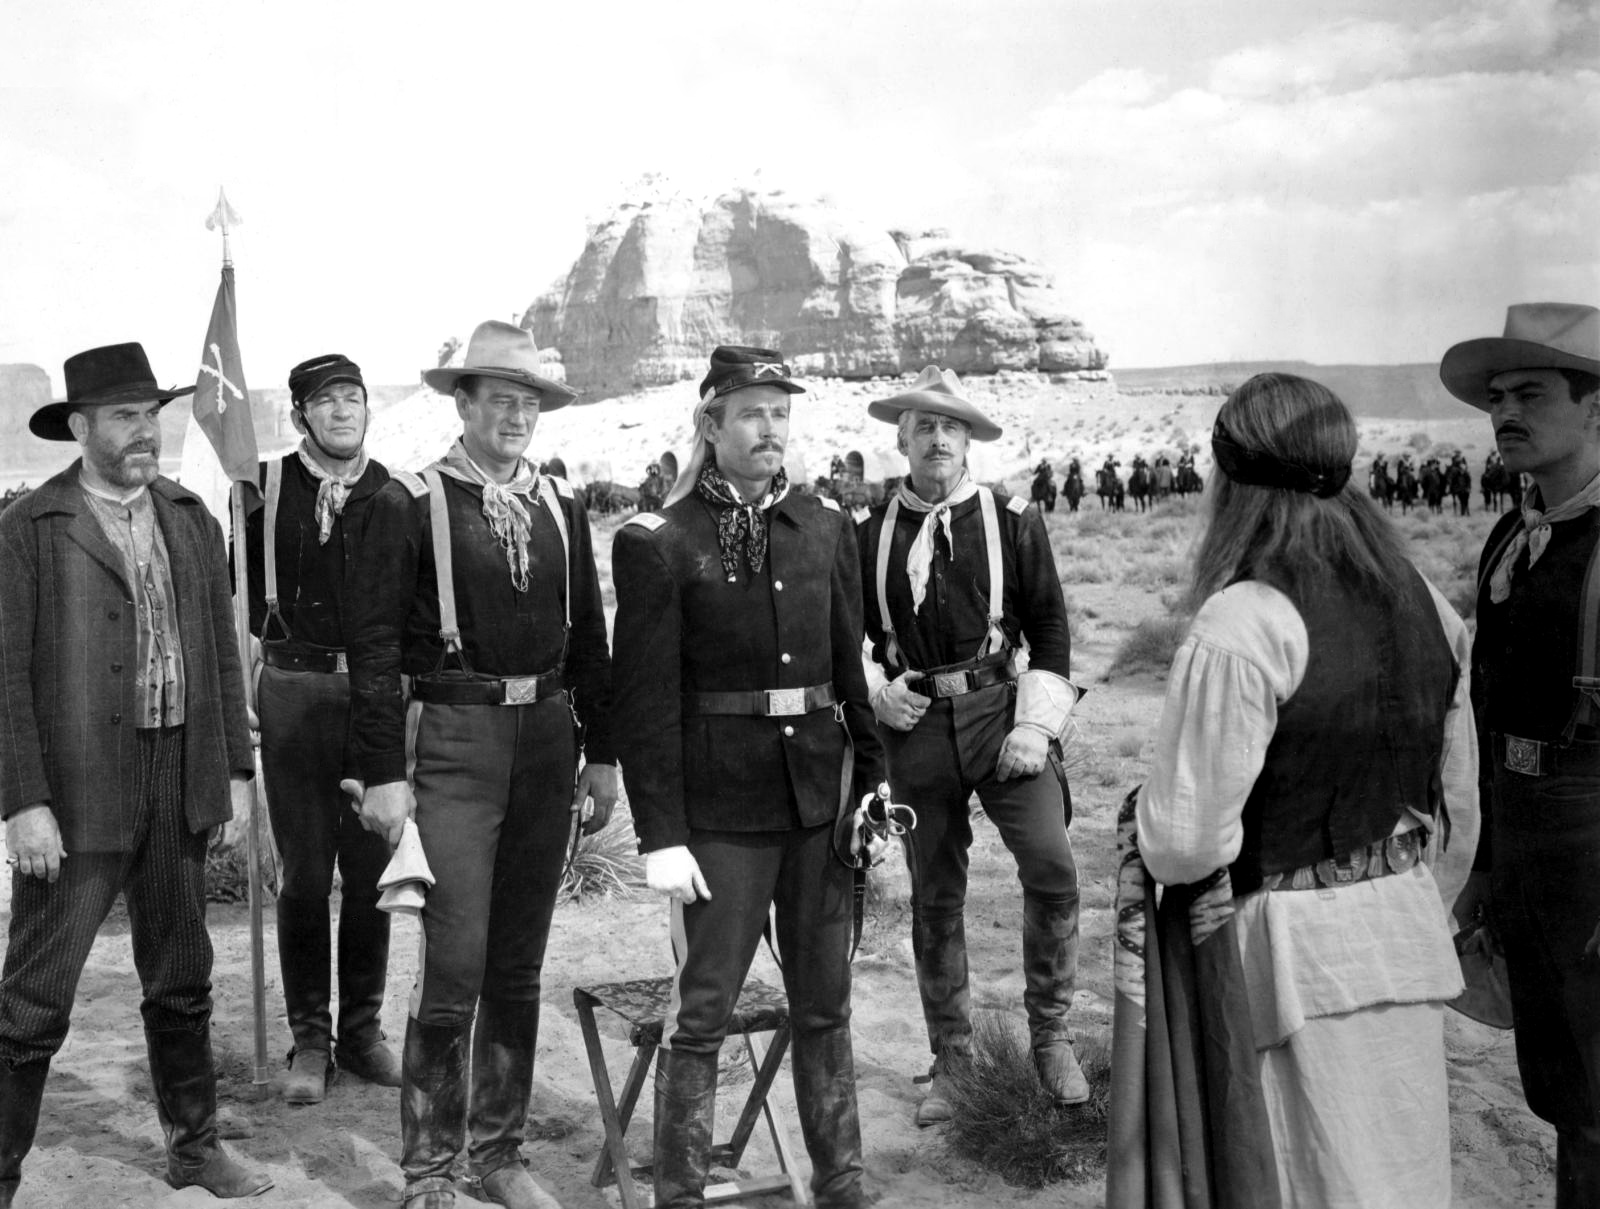 An examination of john fords film fort apache